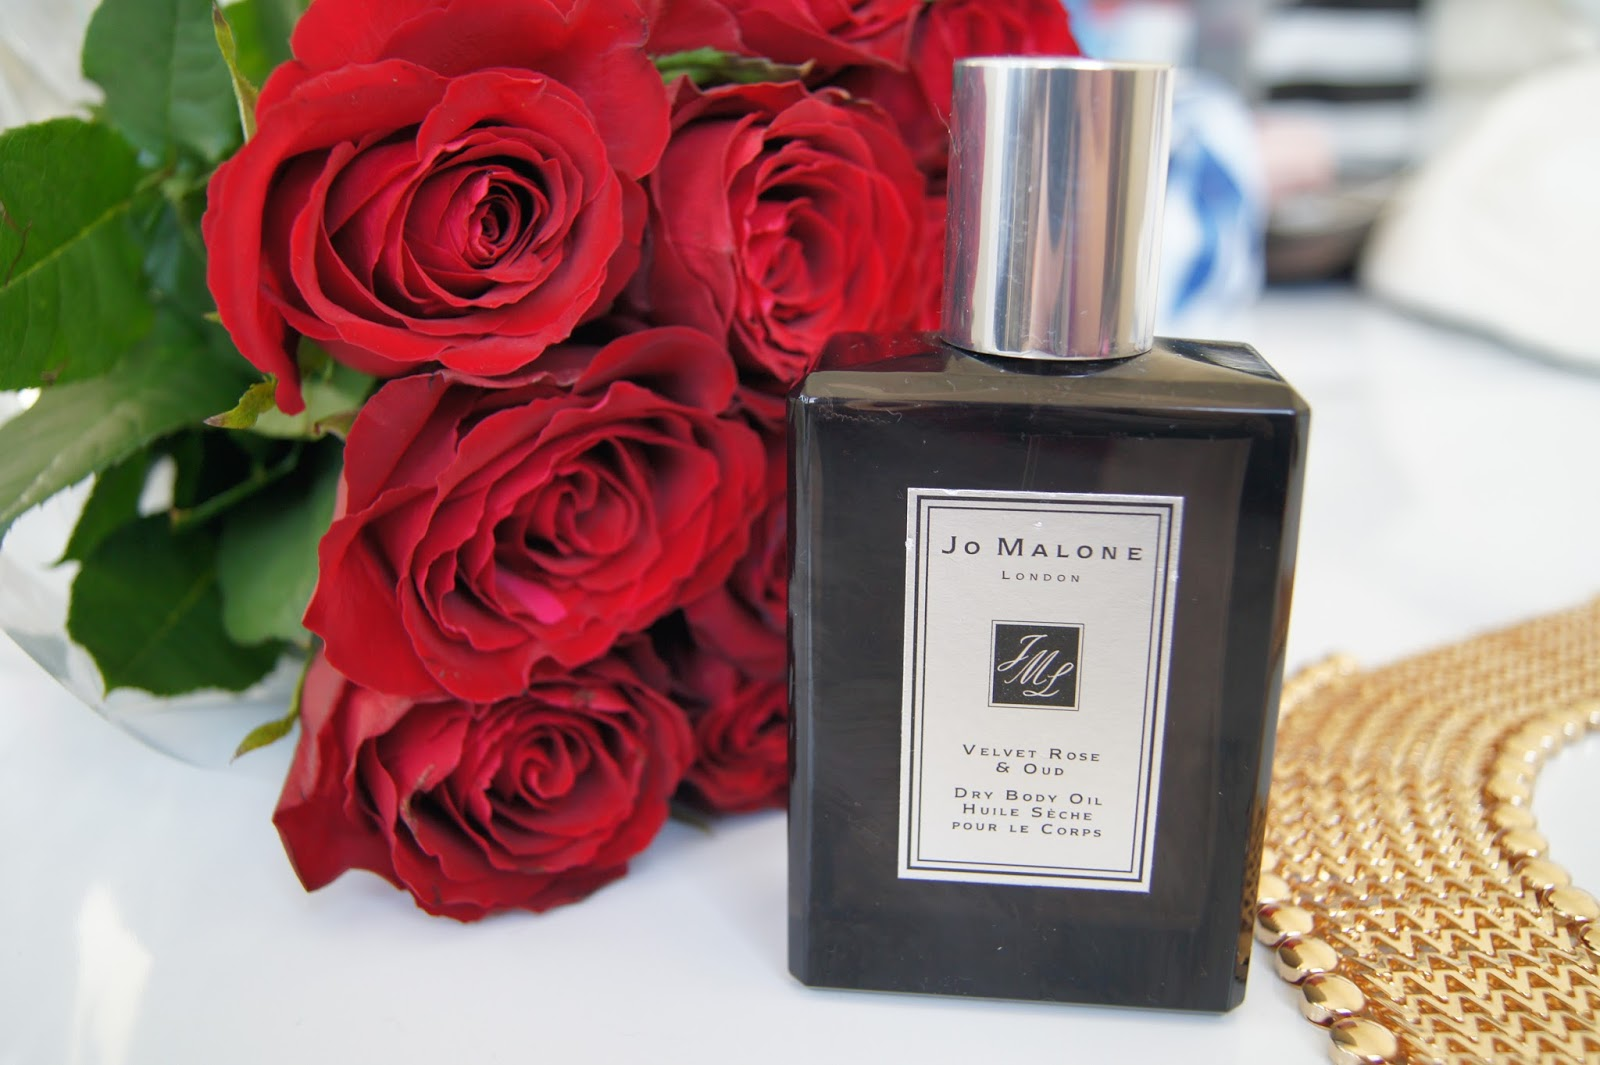 Jo Malone Dry Body Oil Velvet Rose and Oud review